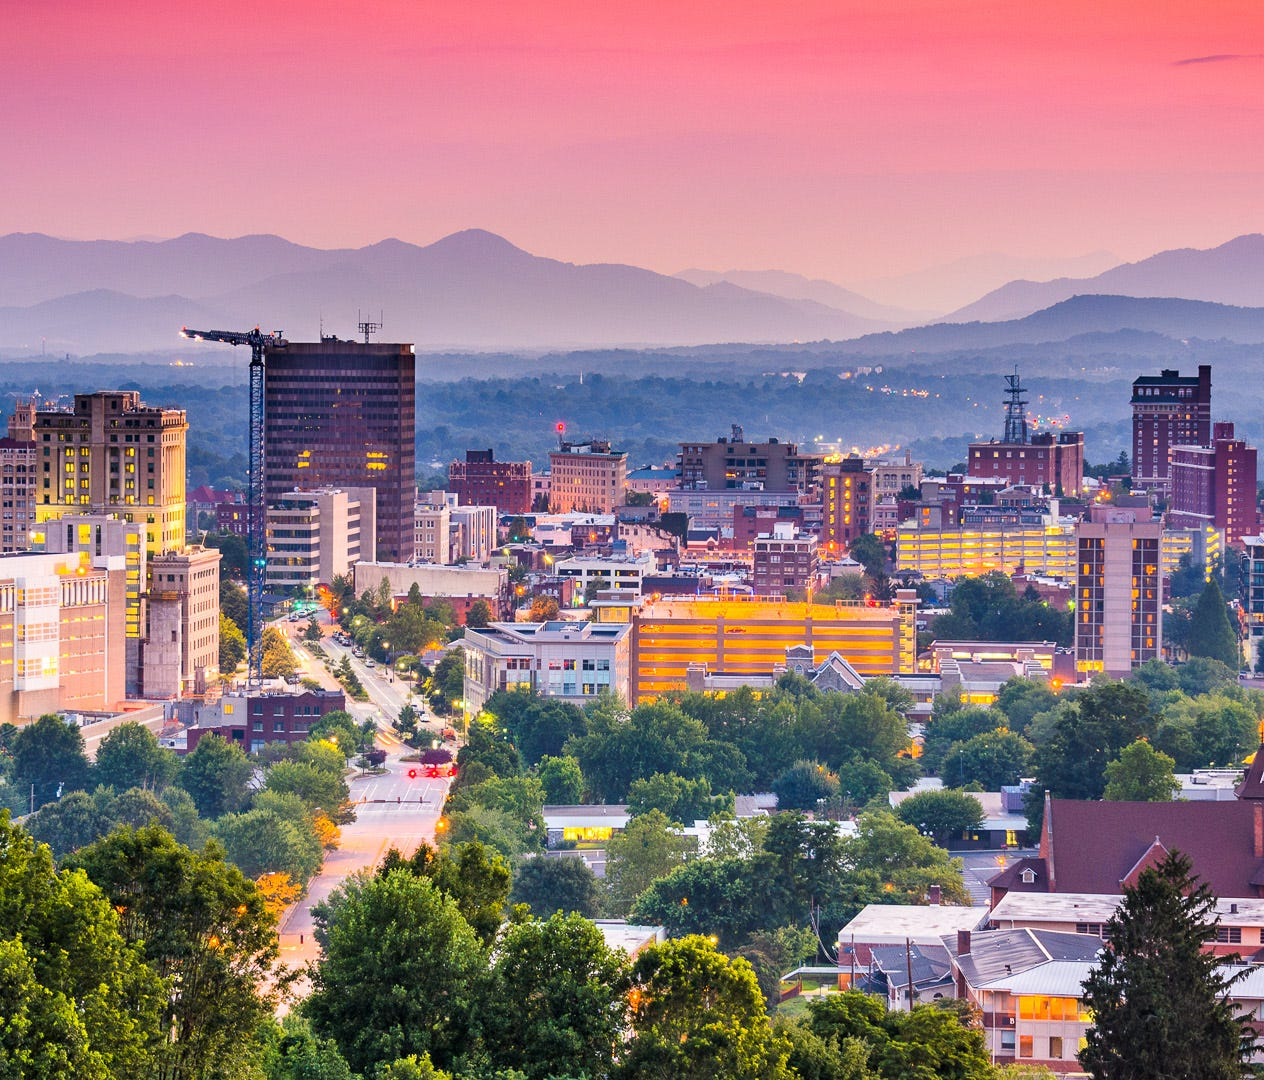 8. Cost to Visit Asheville, N.C.: $1,916.24; Meals: $309; Drinks (including beer): $43.26; 3-night hotel stay: $730; Airfare: $833.98. Savings tips: If you visit the Biltmore Estate, purchase tickets online at least seven days in advance to save $10